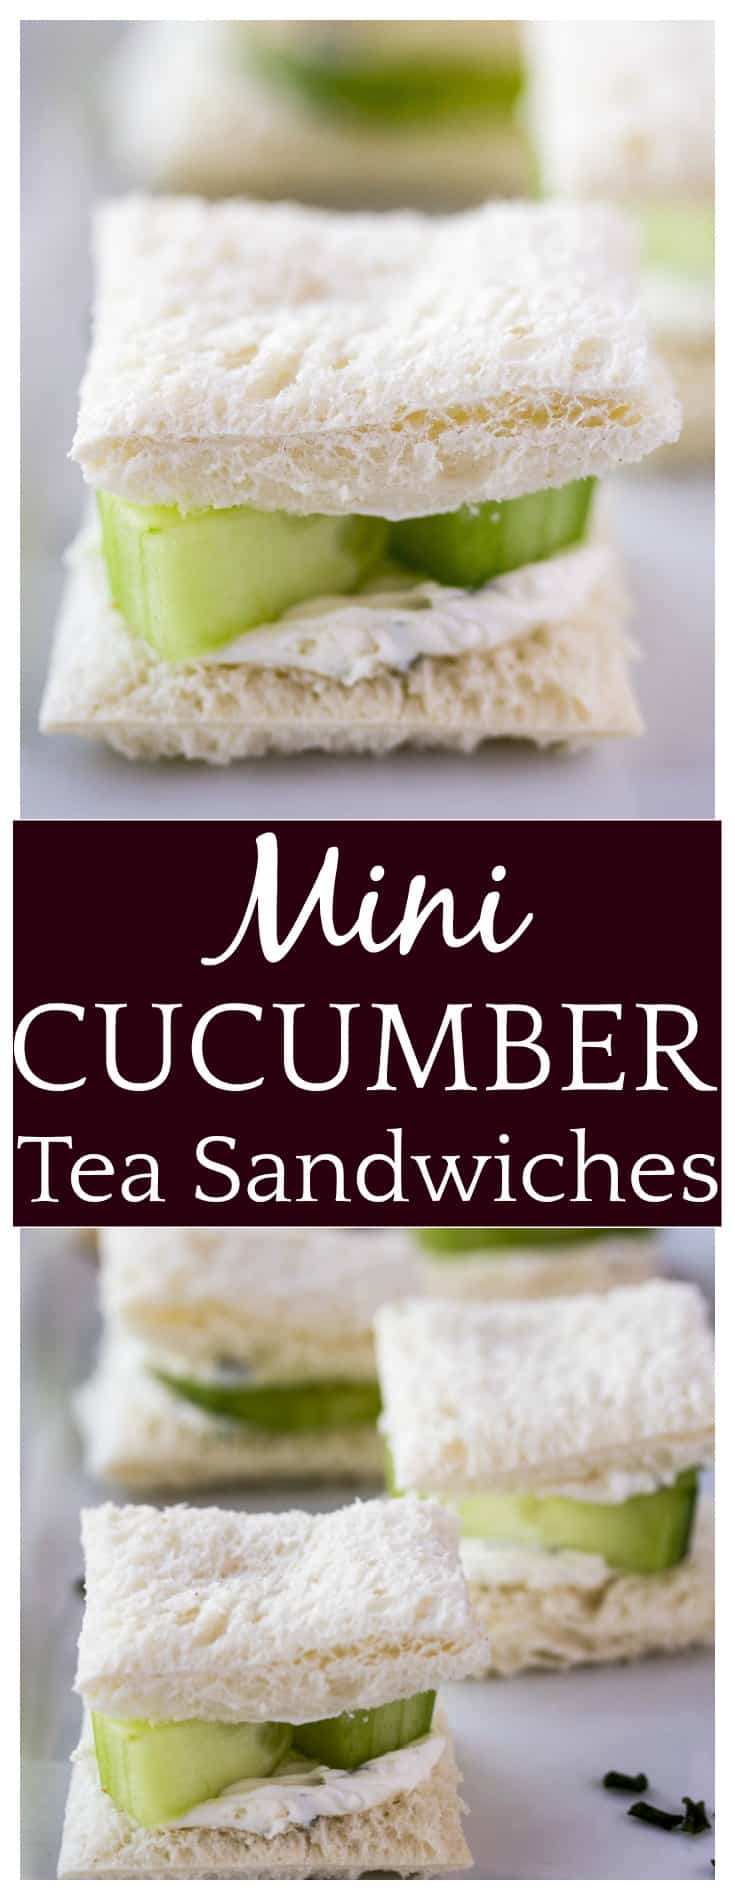 Spring gatherings are the perfect time to serve these Mini Cucumber Tea Sandwiches! This is a super easy appetizer recipe that can be made quickly. It's definitely one of those recipes where you wonder why you don't make it more often! | #teasandwiches #fingerfood #springfood #dlbrecipes #sandwichrecipe #easyrecipe